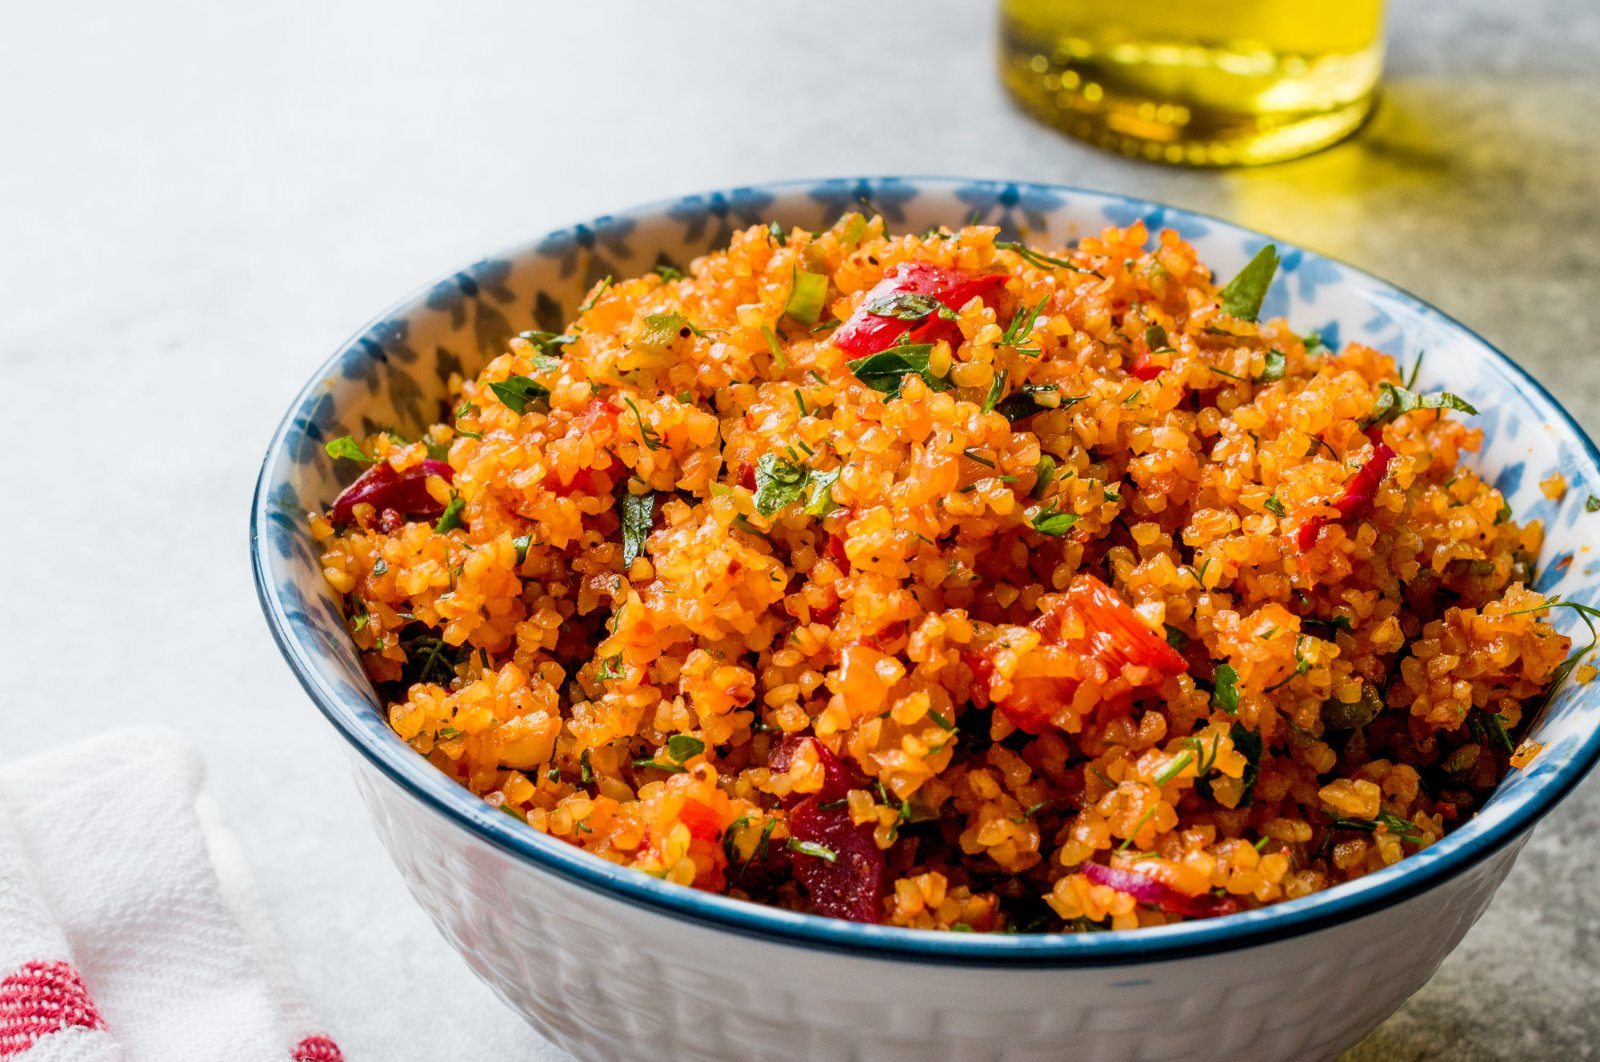 The more tomato paste you use in your kısır mix, the redder it will look. (Shutterstock Photo)